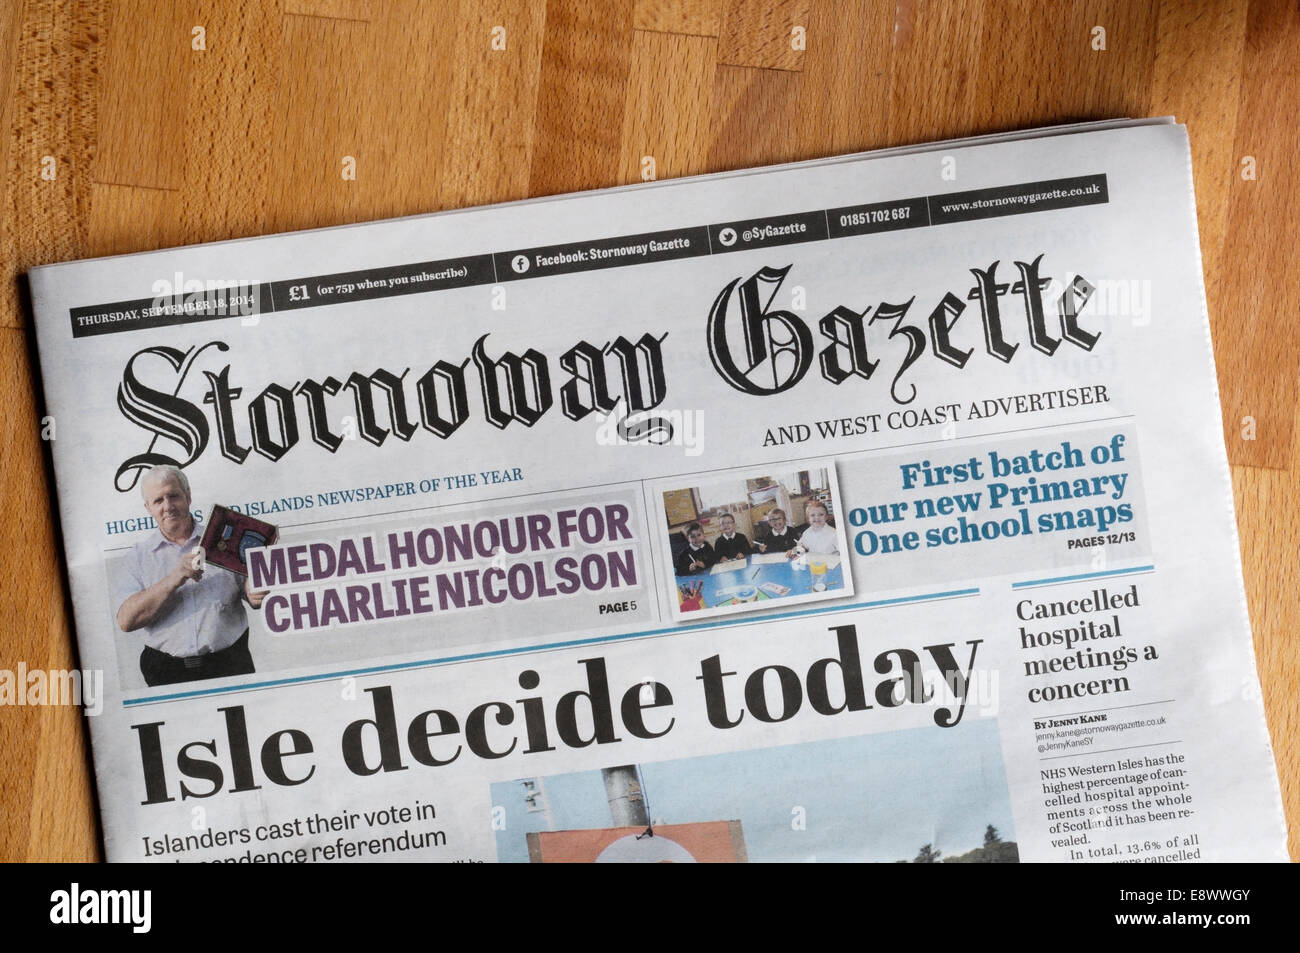 The front page of the Stornoway Gazette newspaper. - Stock Image